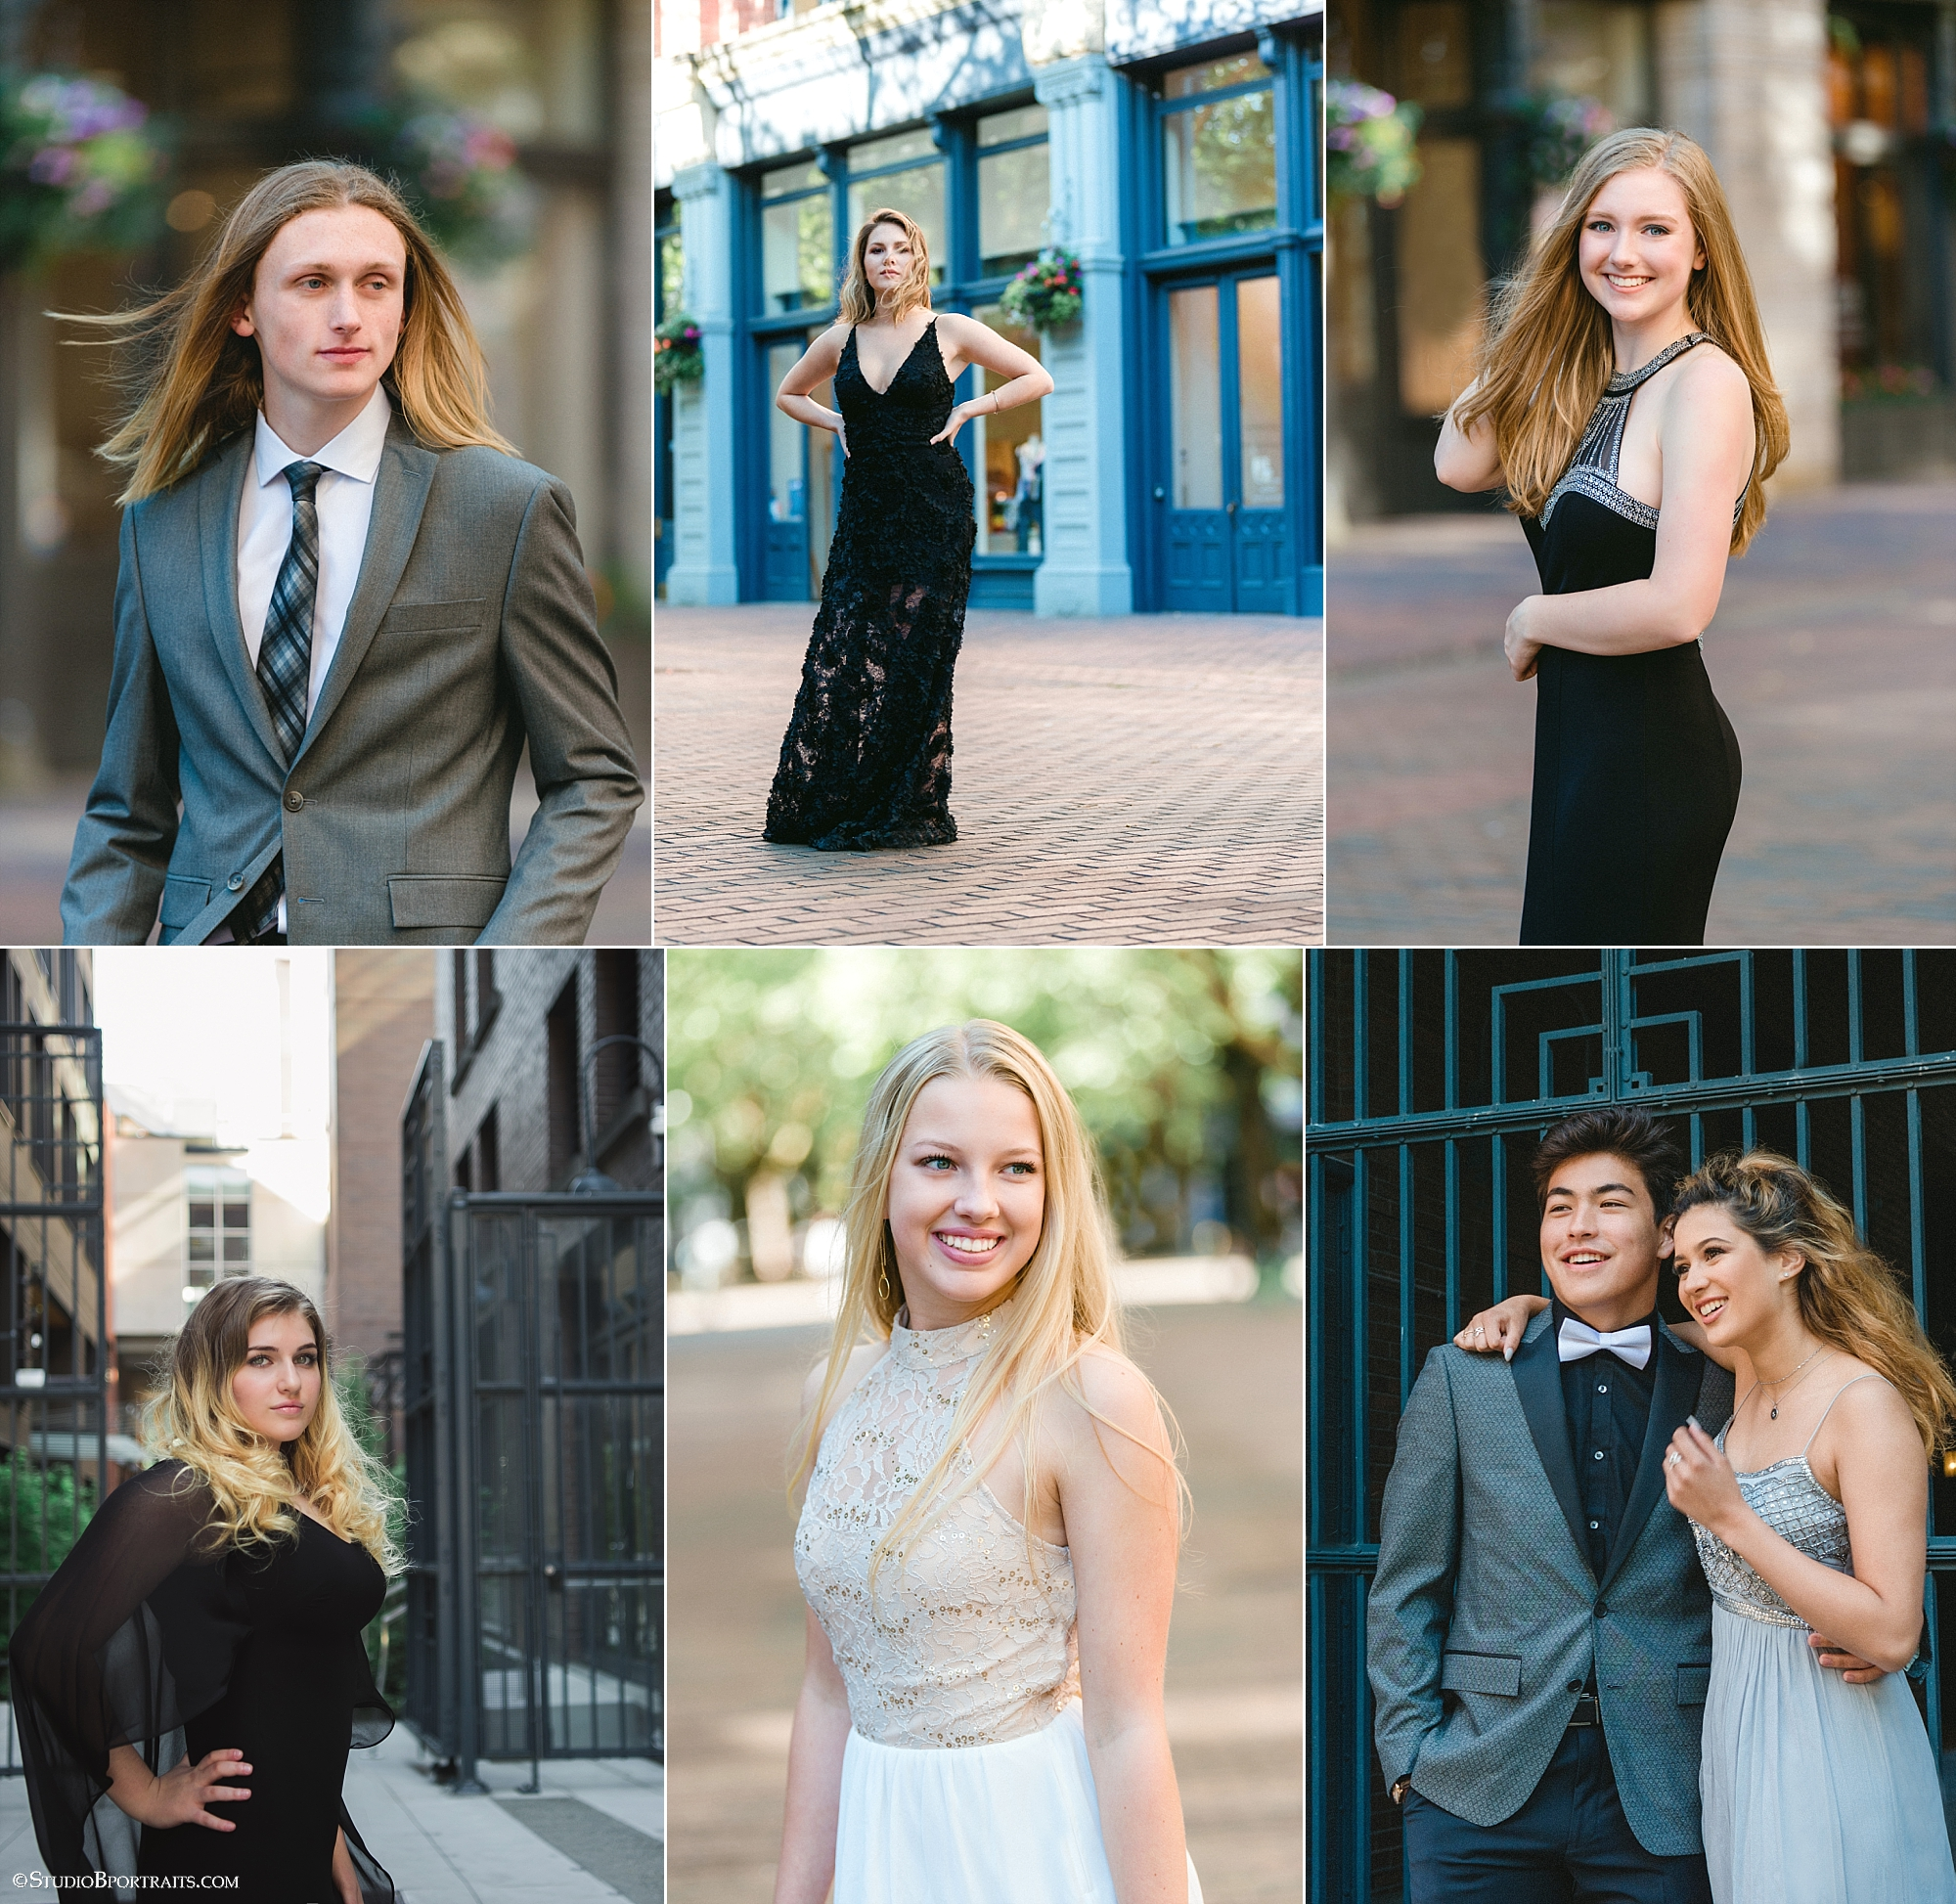 Big thank you to  Macy's  and stylist Anat Ben-Shaul ( follow her  @StyleBellevue ) for styling our 2019 Studio B Seniors Model Team Influencers in these fabulous Prom and Homecoming looks.